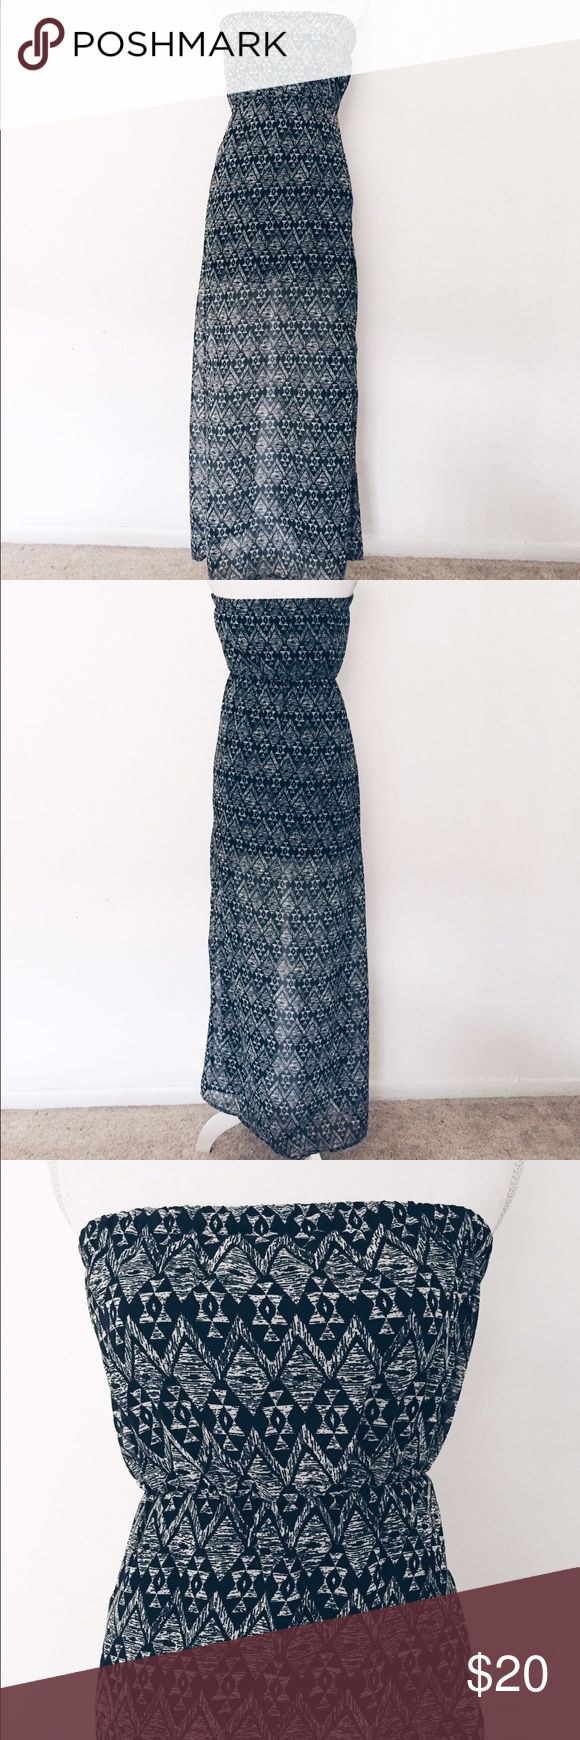 """Aztec Print Strapless Maxi Dress This light and breezy maxi dress is perfect for summer BBQs and parties! Has a slit in the left side and an inner lining. In great condition!  Length: 47""""  Made of 100% polyester   Brand is Divided by H&M  *No Trades* H&M Dresses Maxi"""